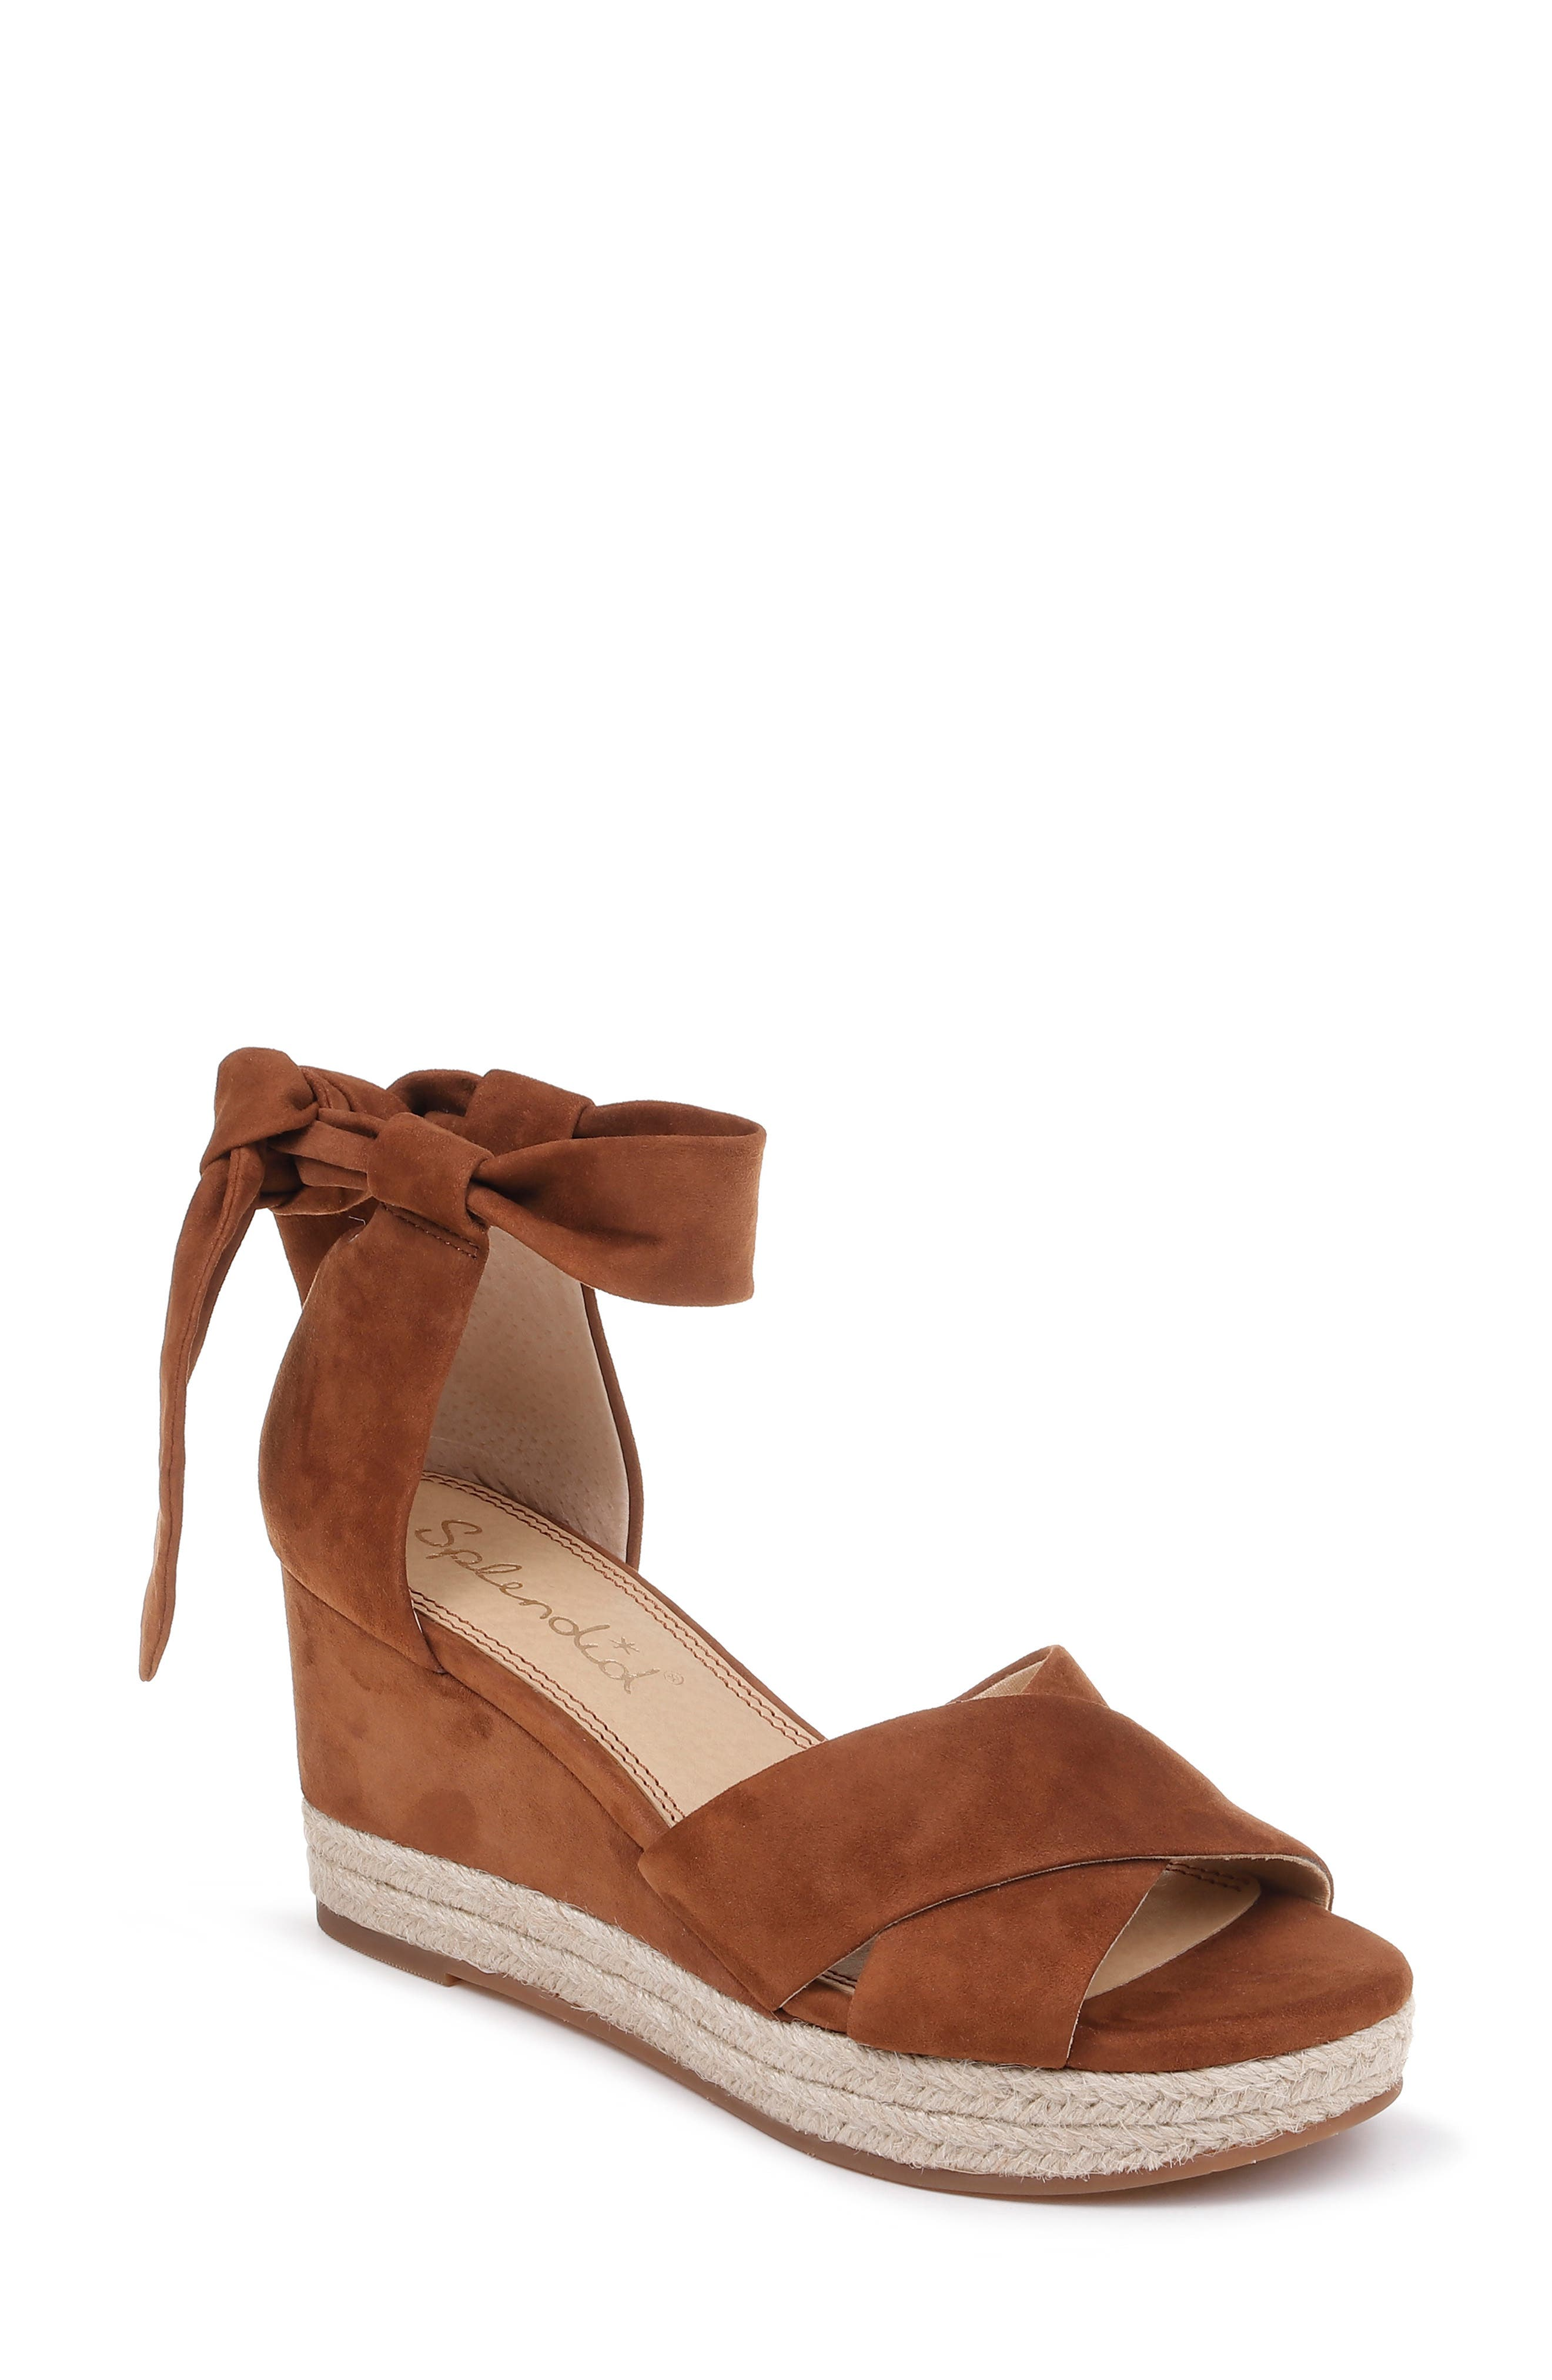 SPLENDID Terrence Ankle Wrap Wedge Sandal, Main, color, CHESTNUT SUEDE